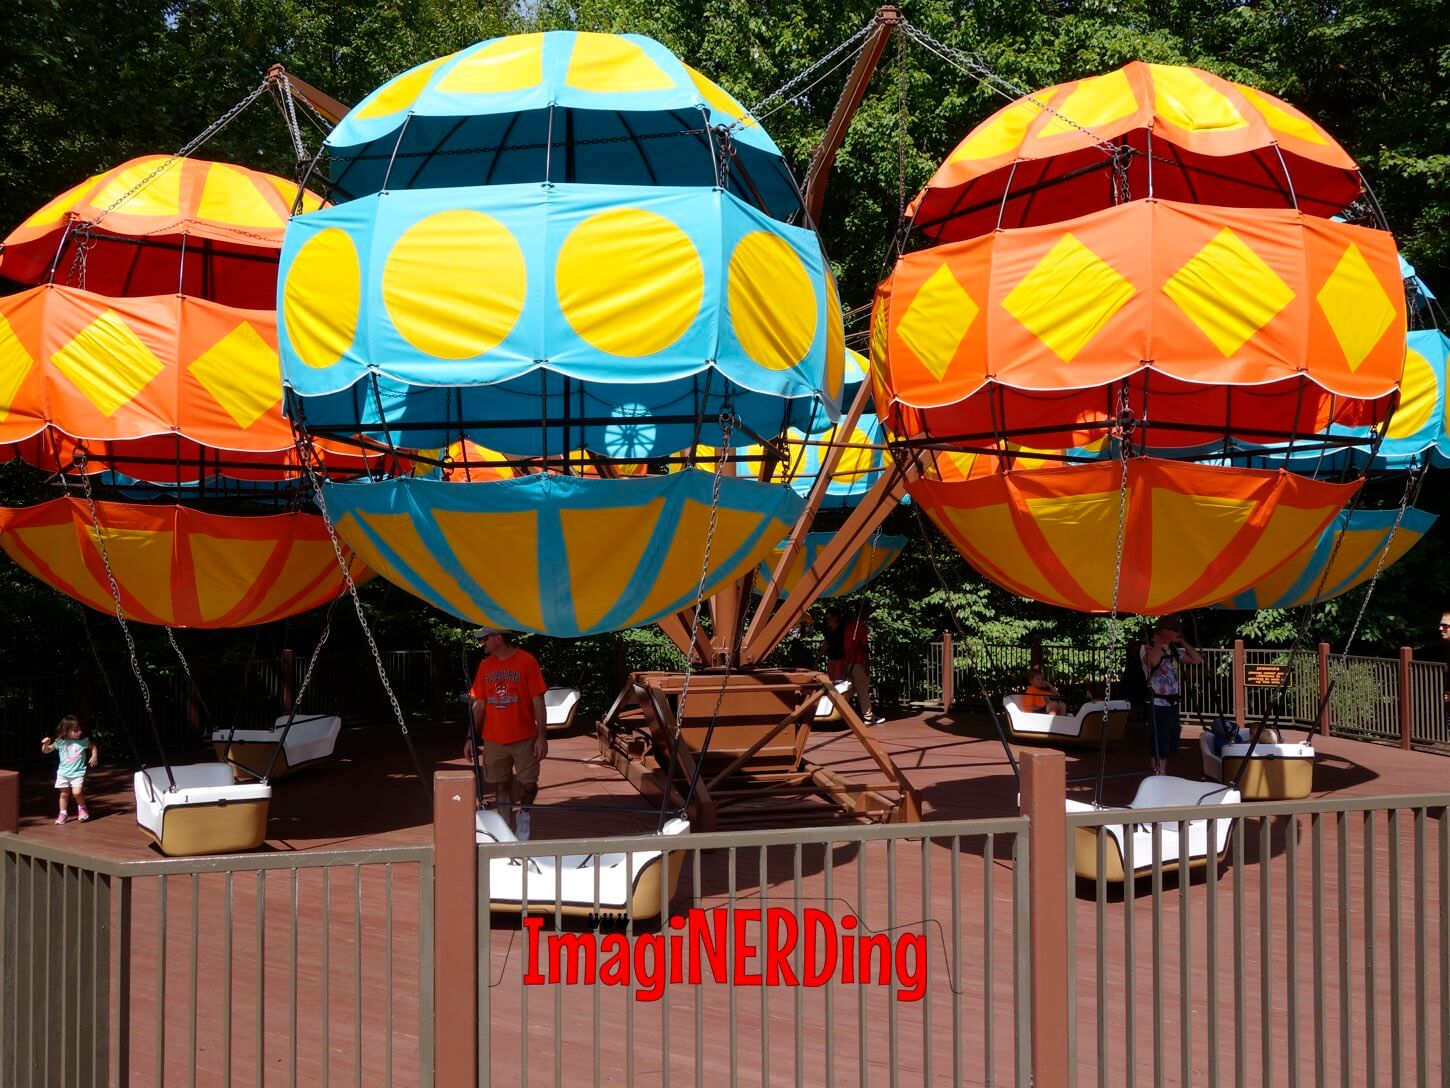 Flat Rides In Amusement Parks A History Imaginerding